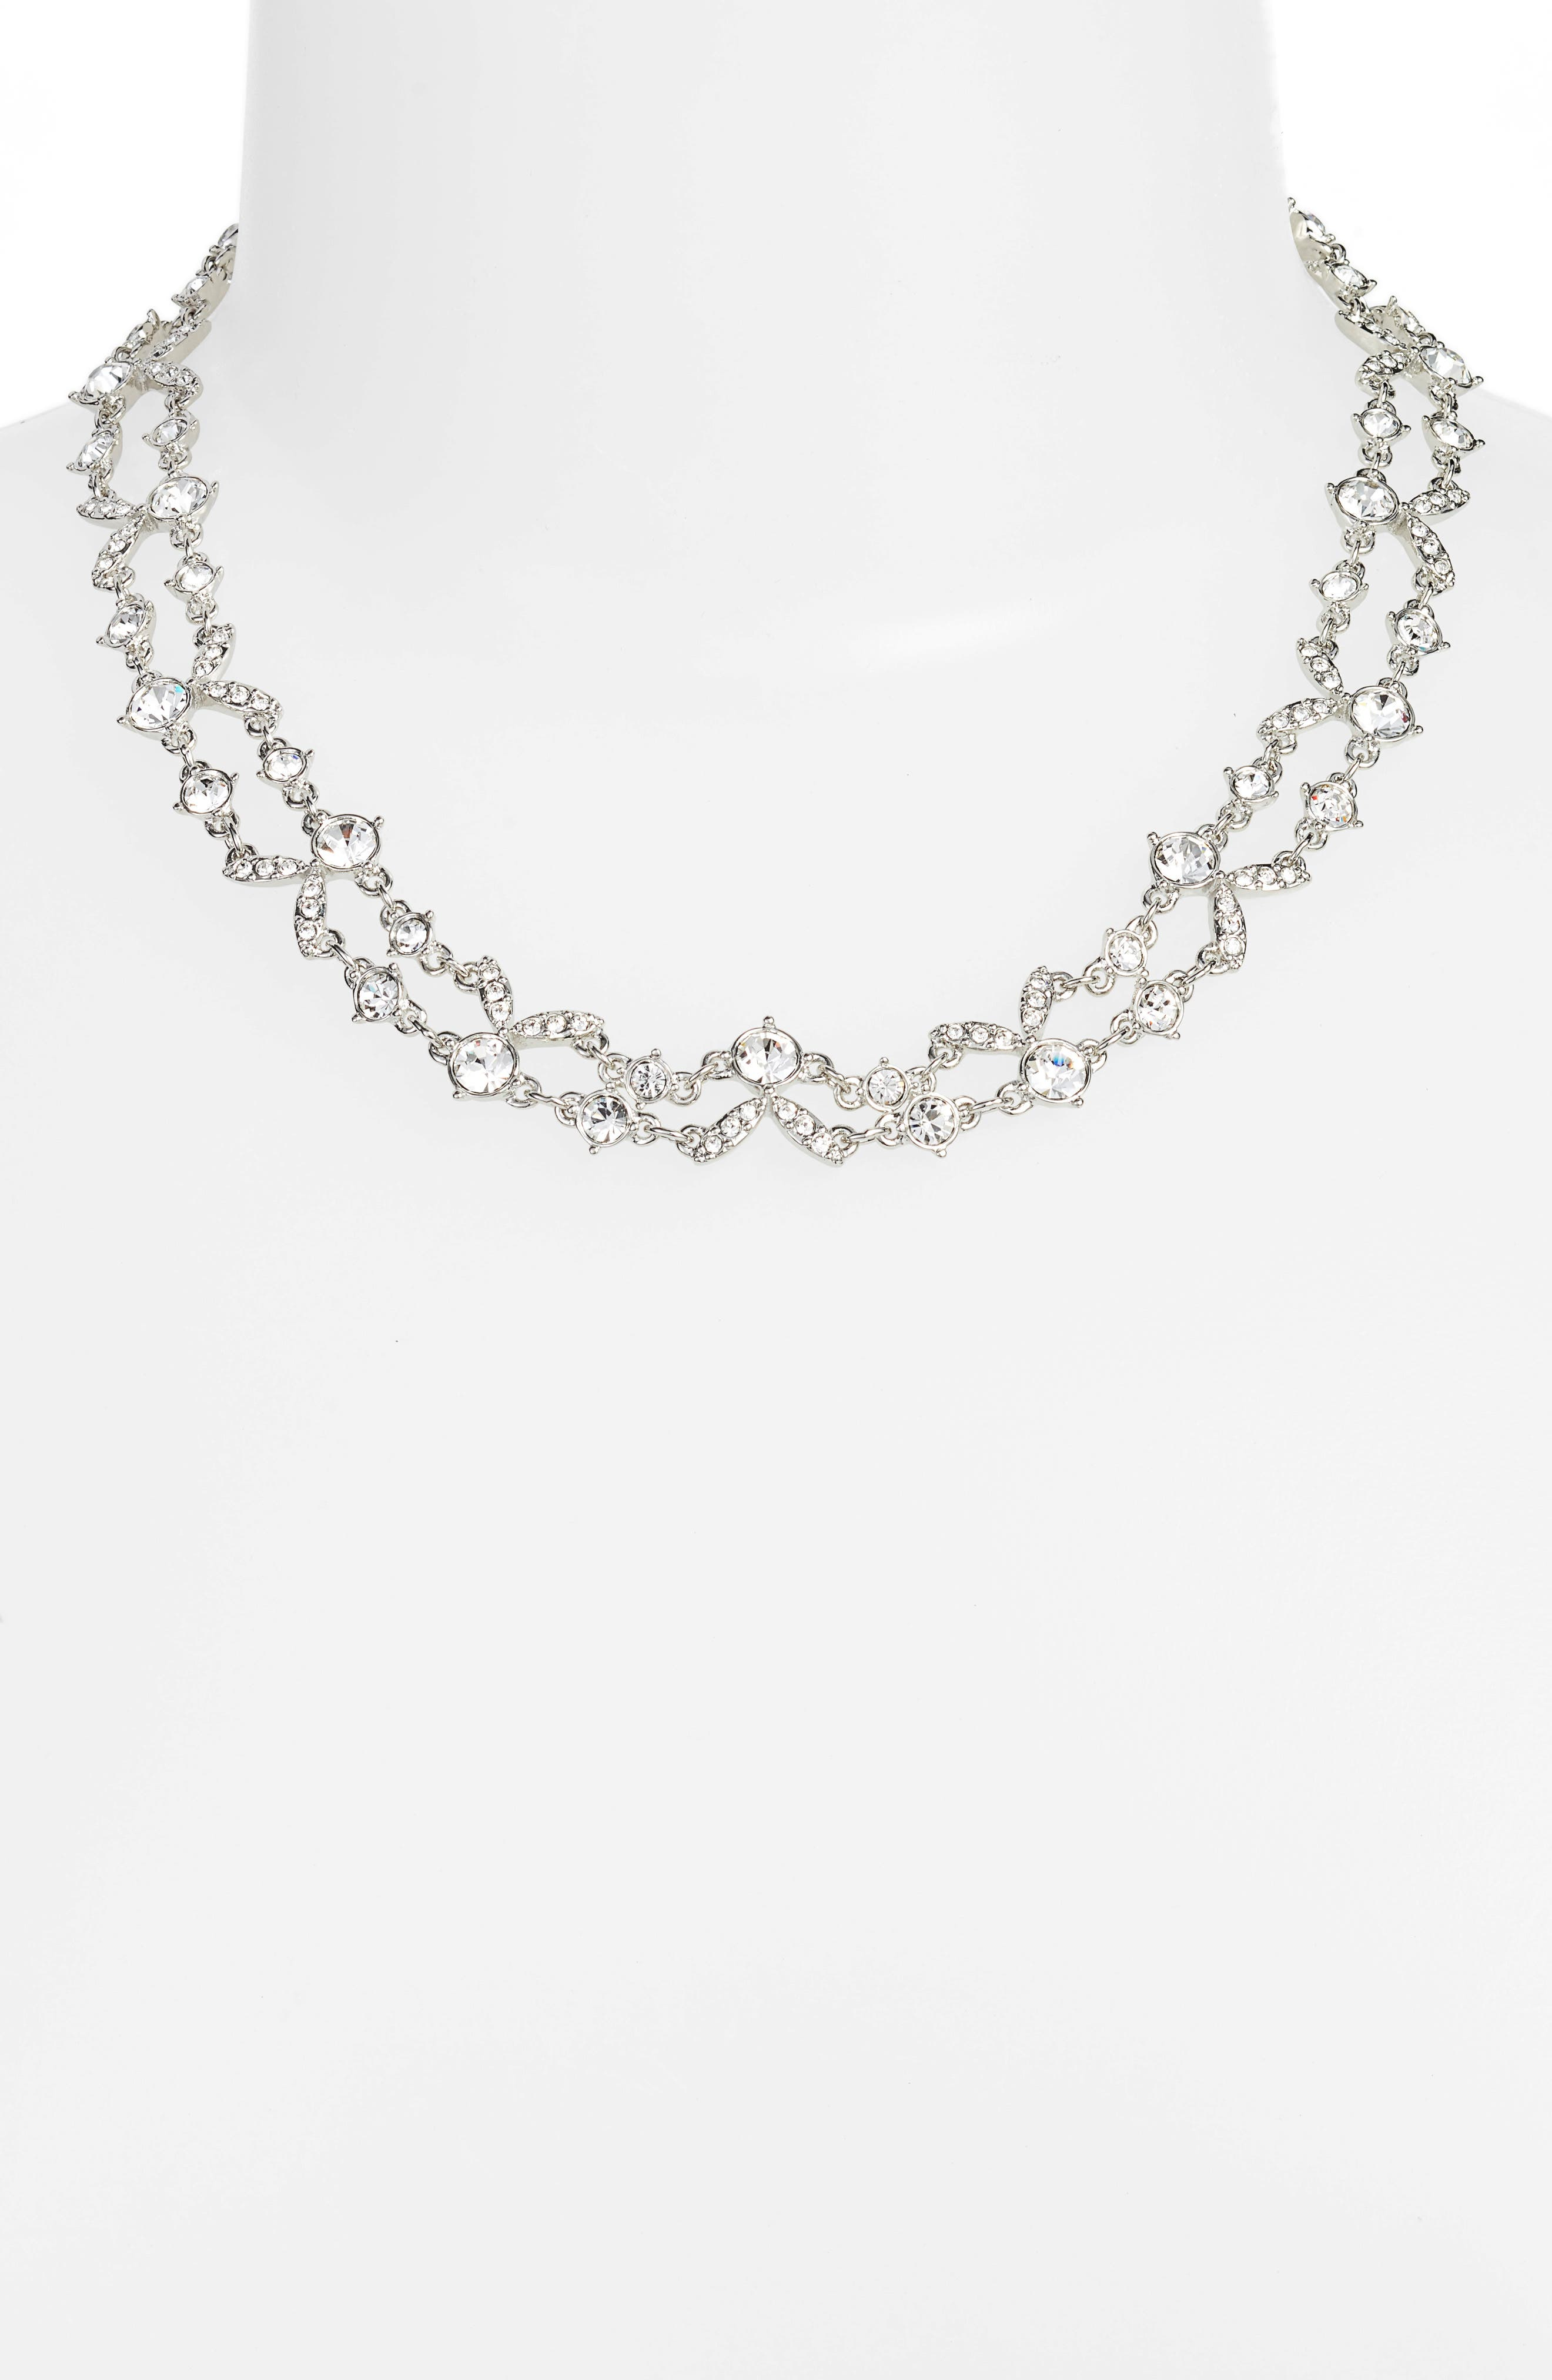 2-Row Crystal Collar Necklace,                             Alternate thumbnail 2, color,                             040